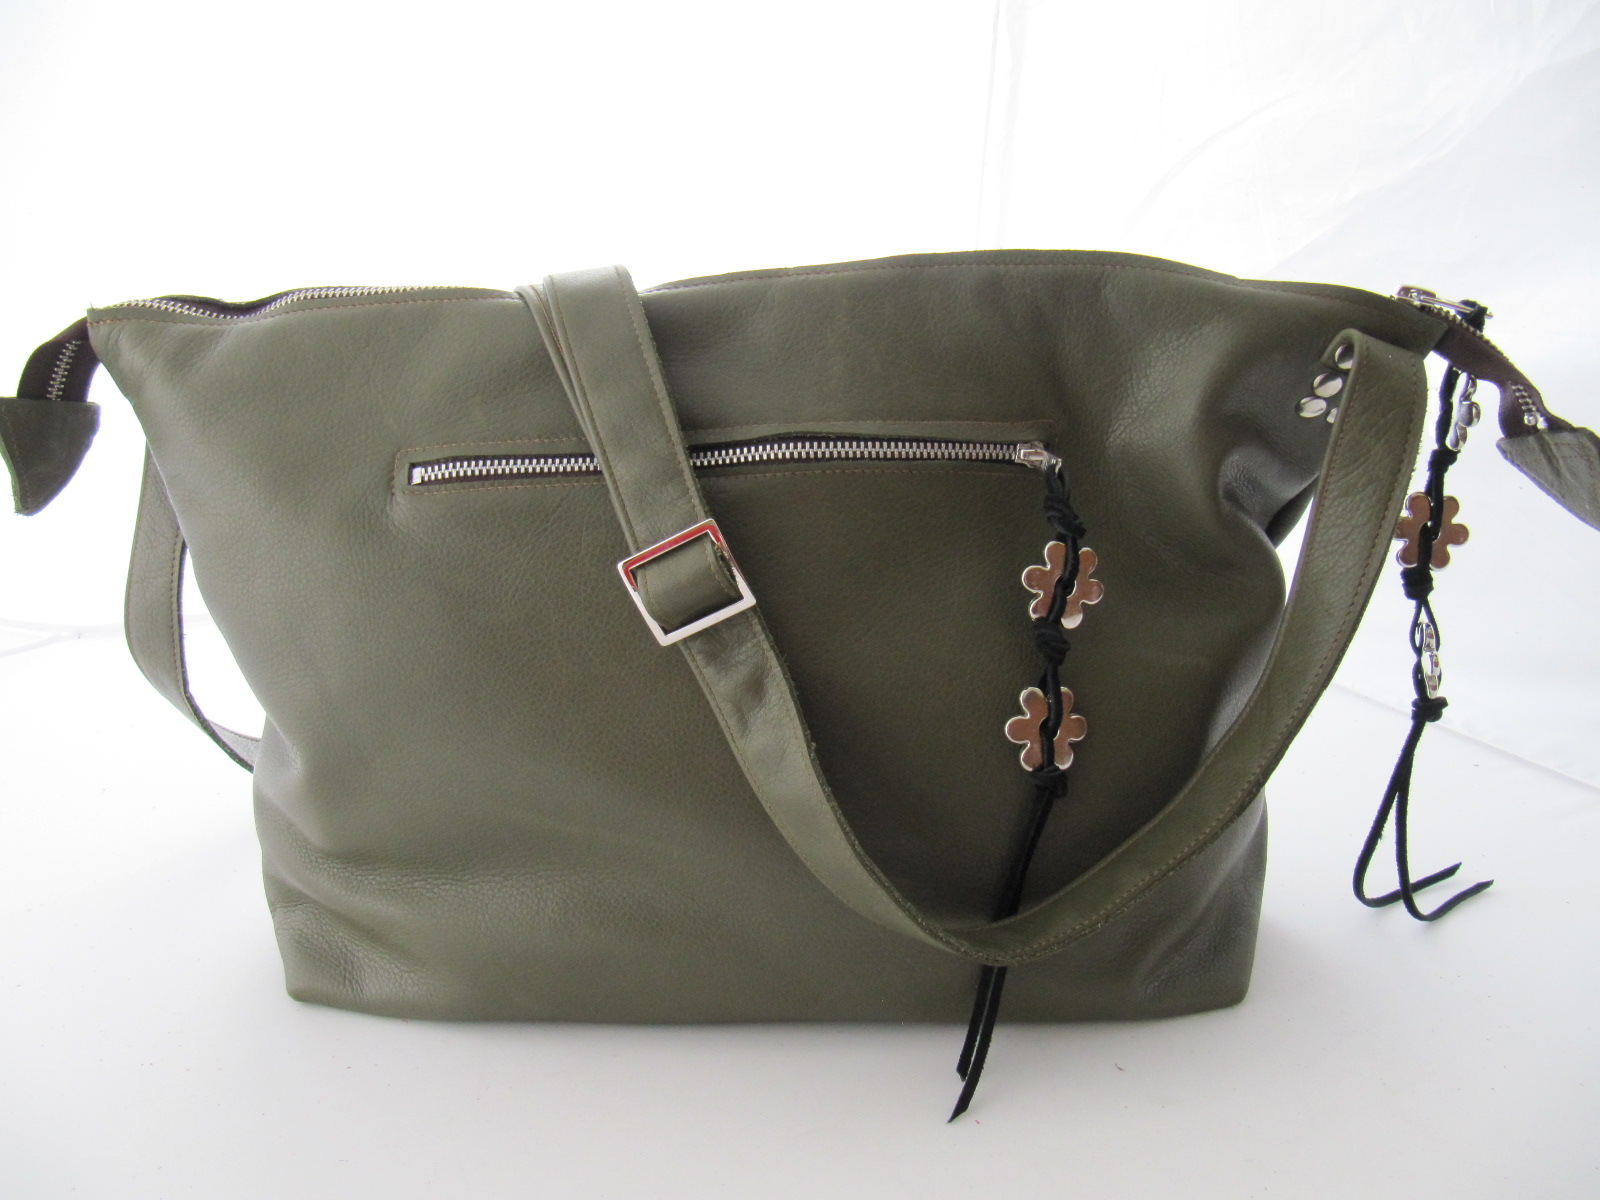 Olive Green soft leather handbag